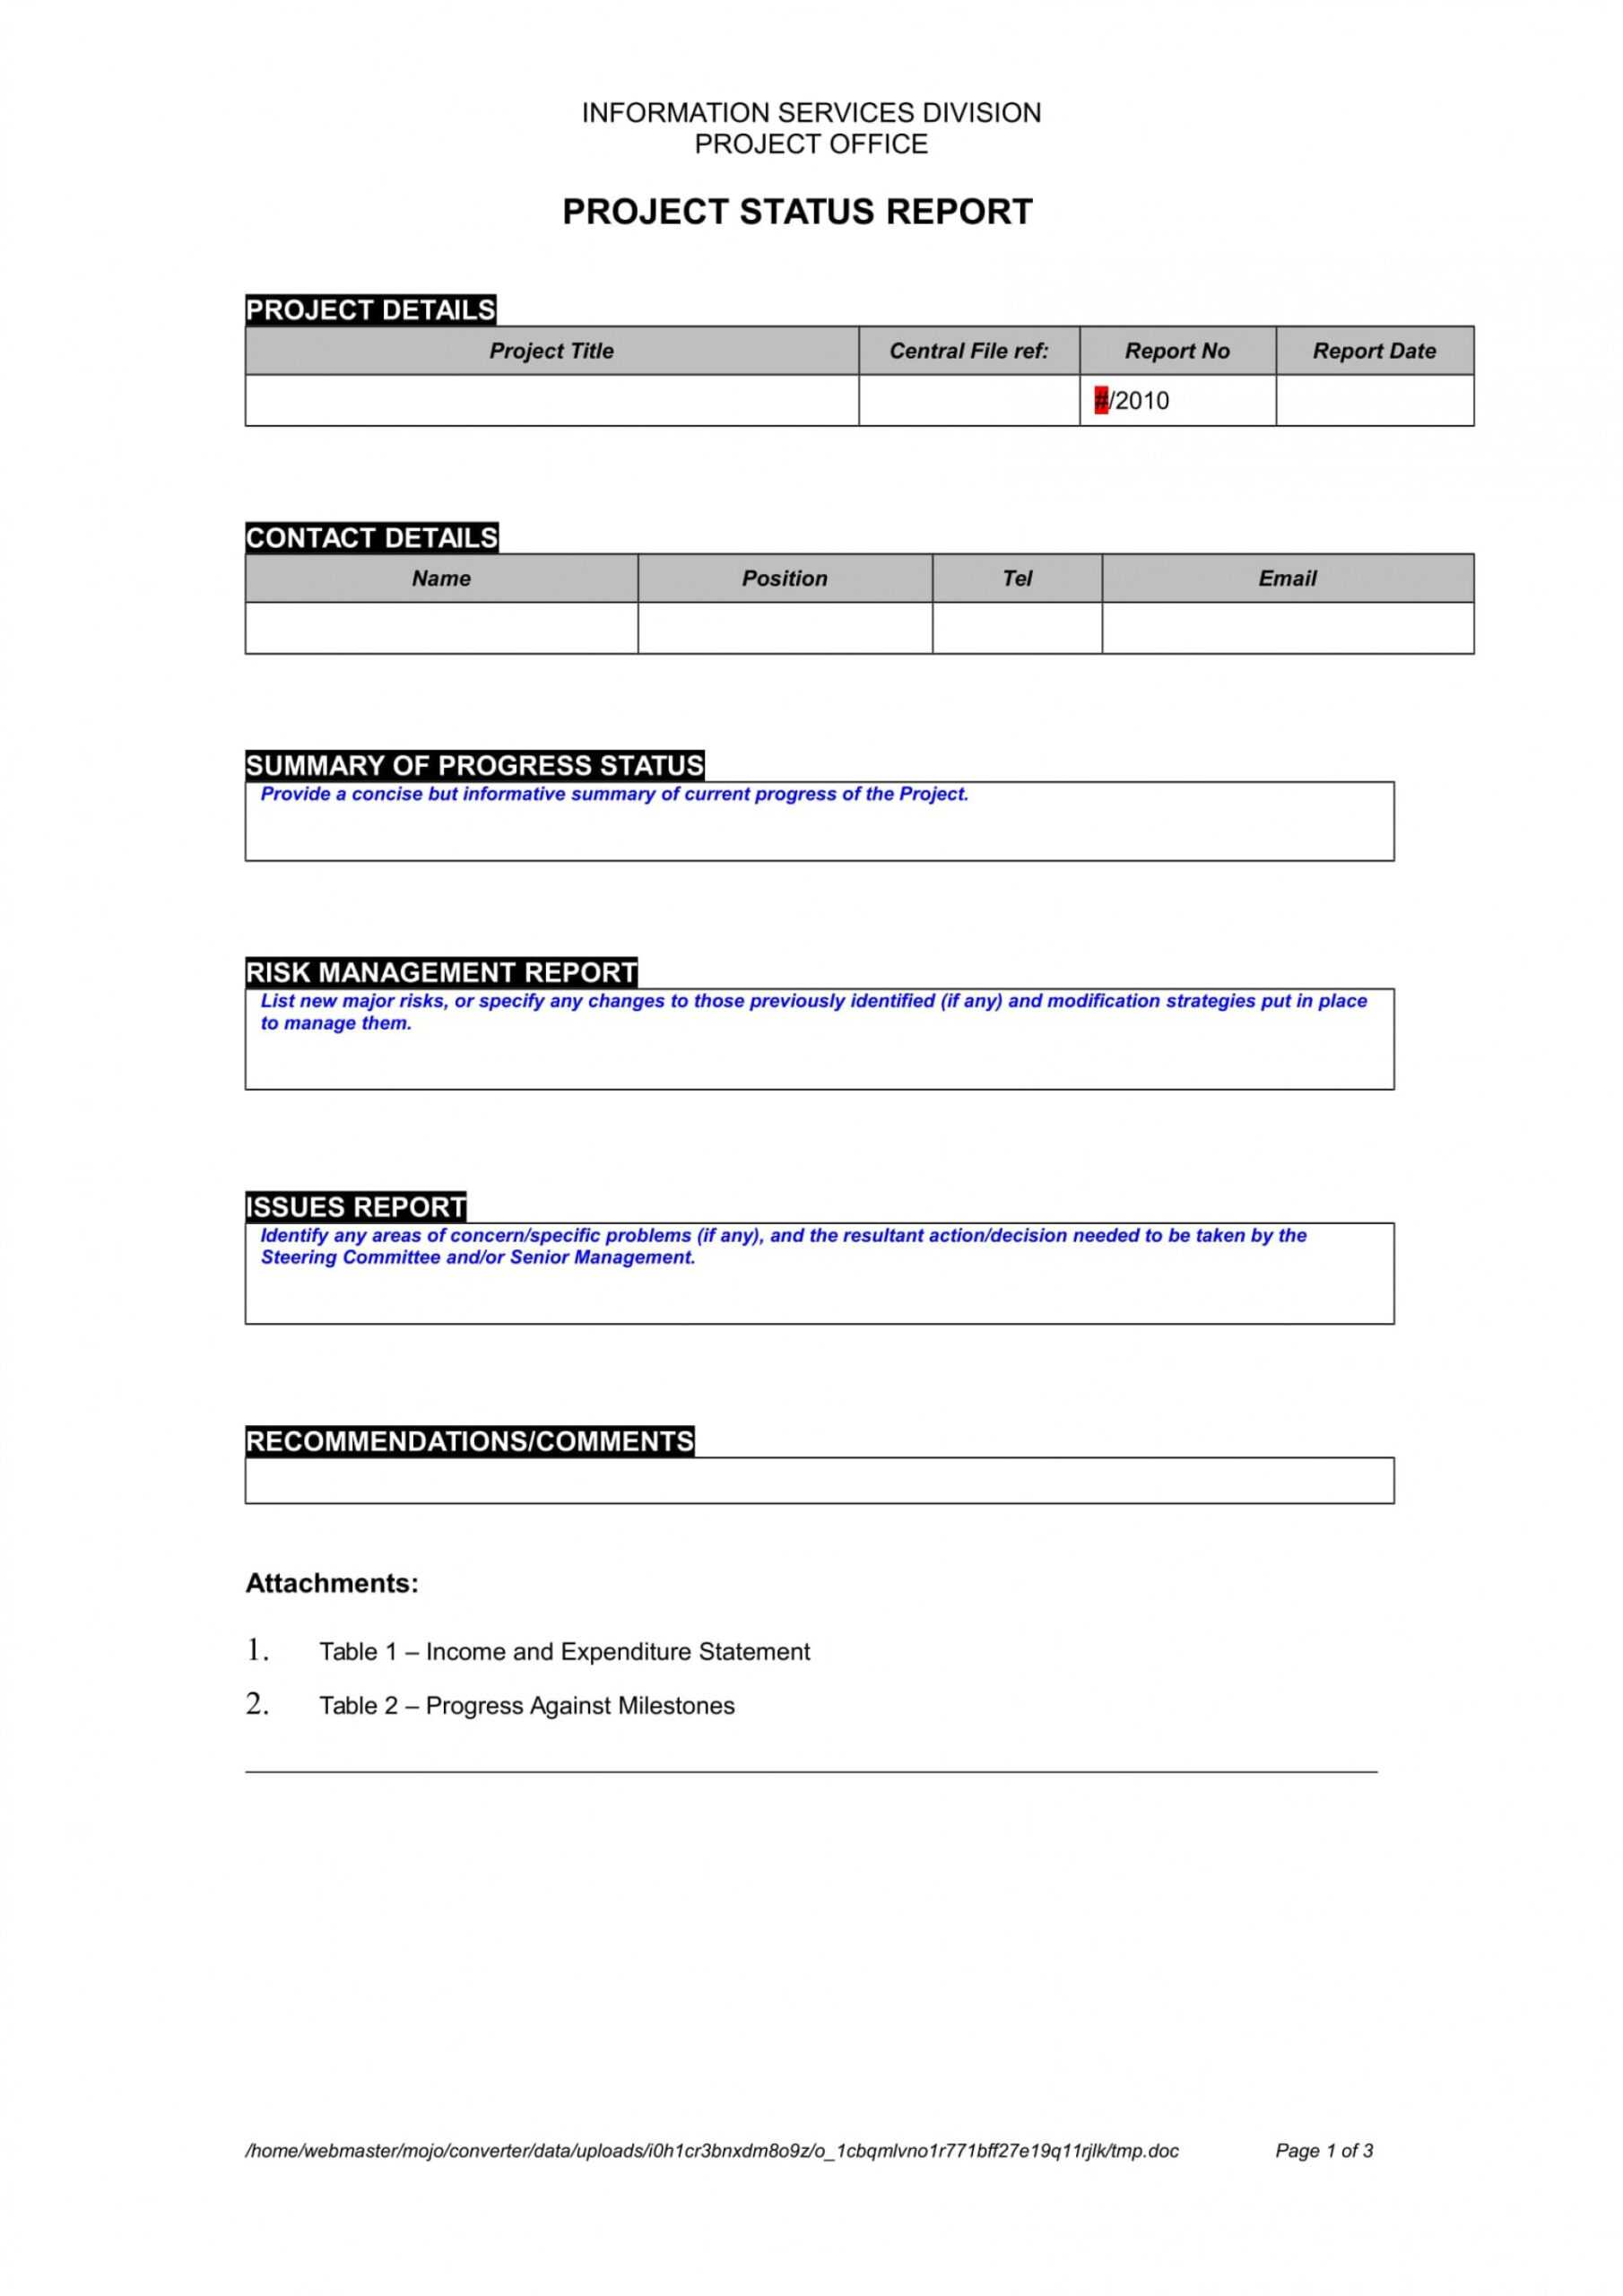 002 Status Report Template Project Management Amazing Ideas throughout Report To Senior Management Template